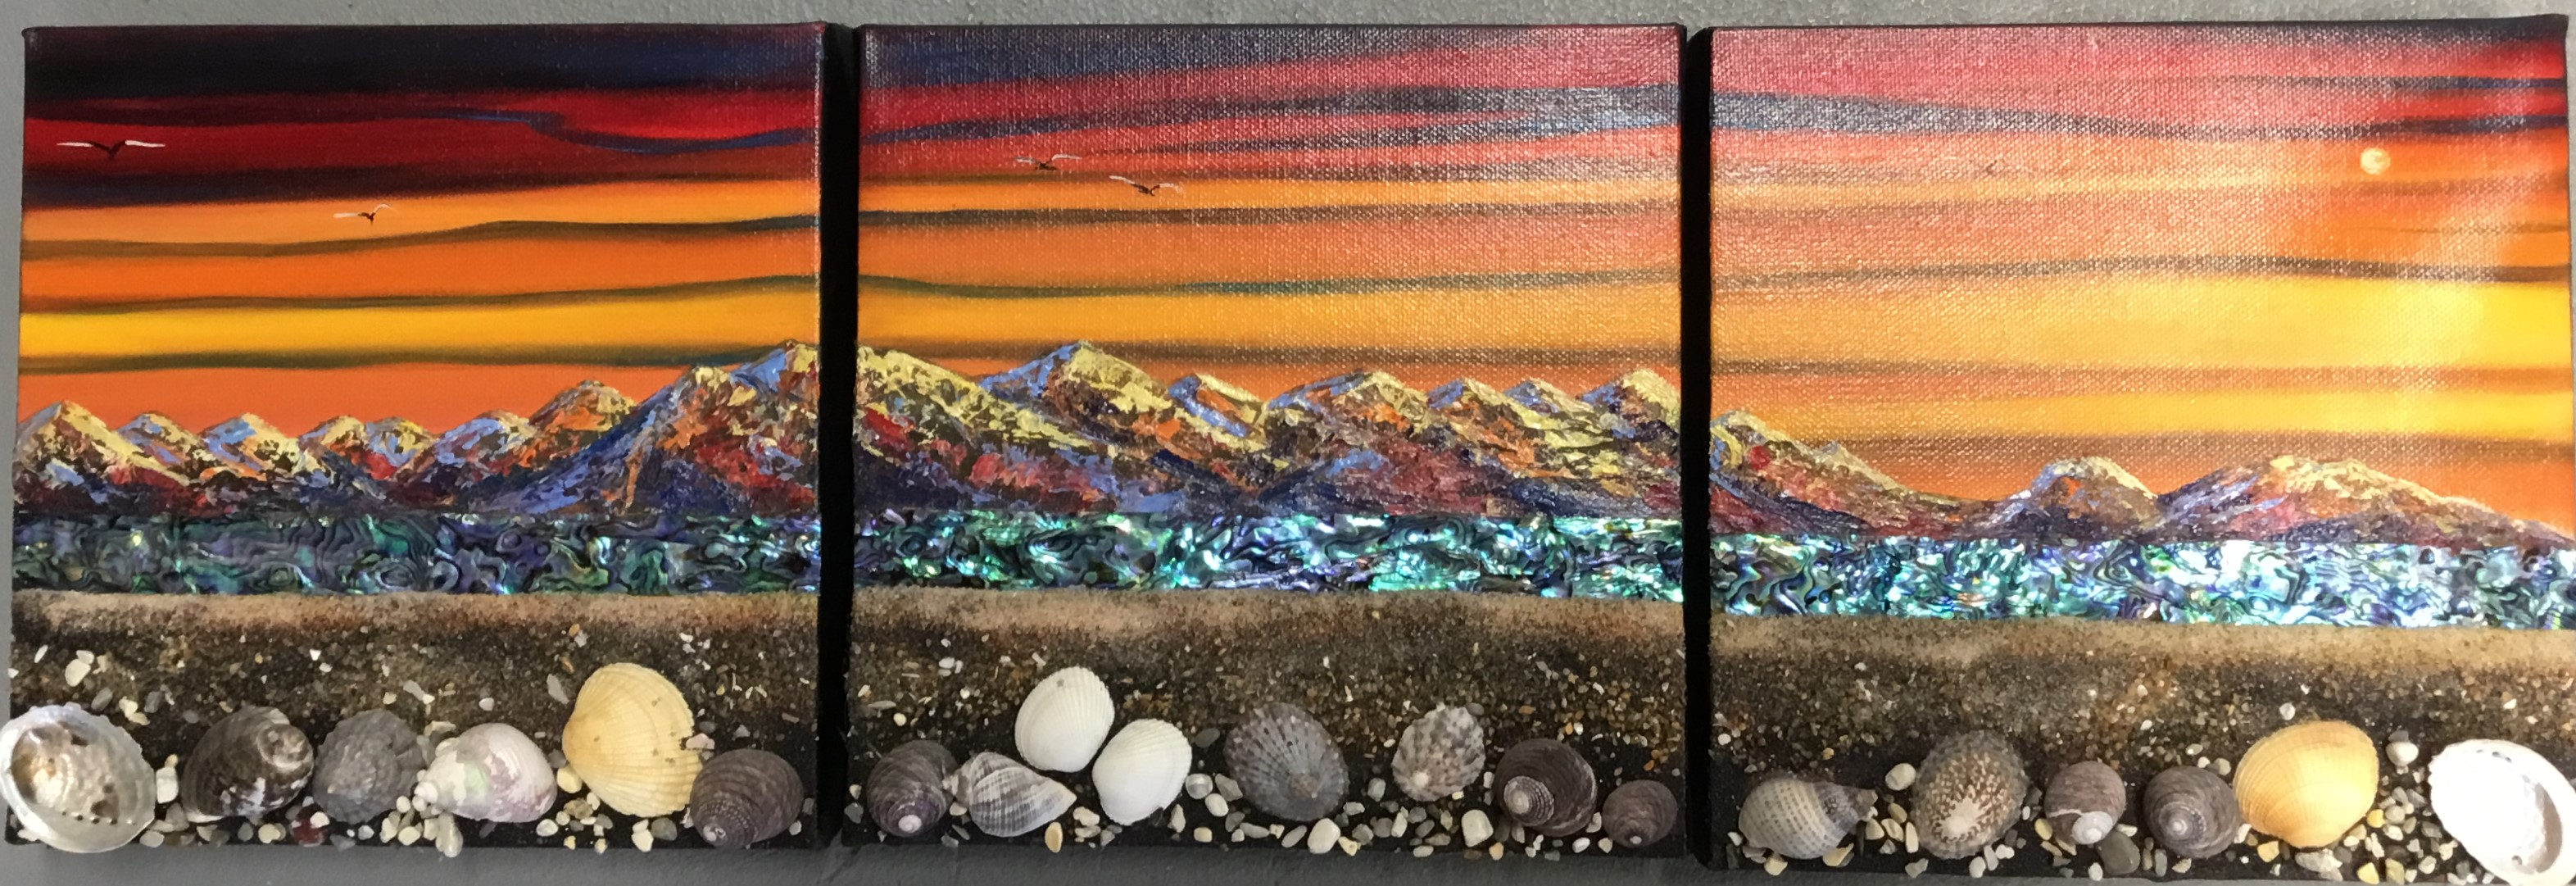 Mighty Kaikoura Sunrise Triptych 3 Small Canvases